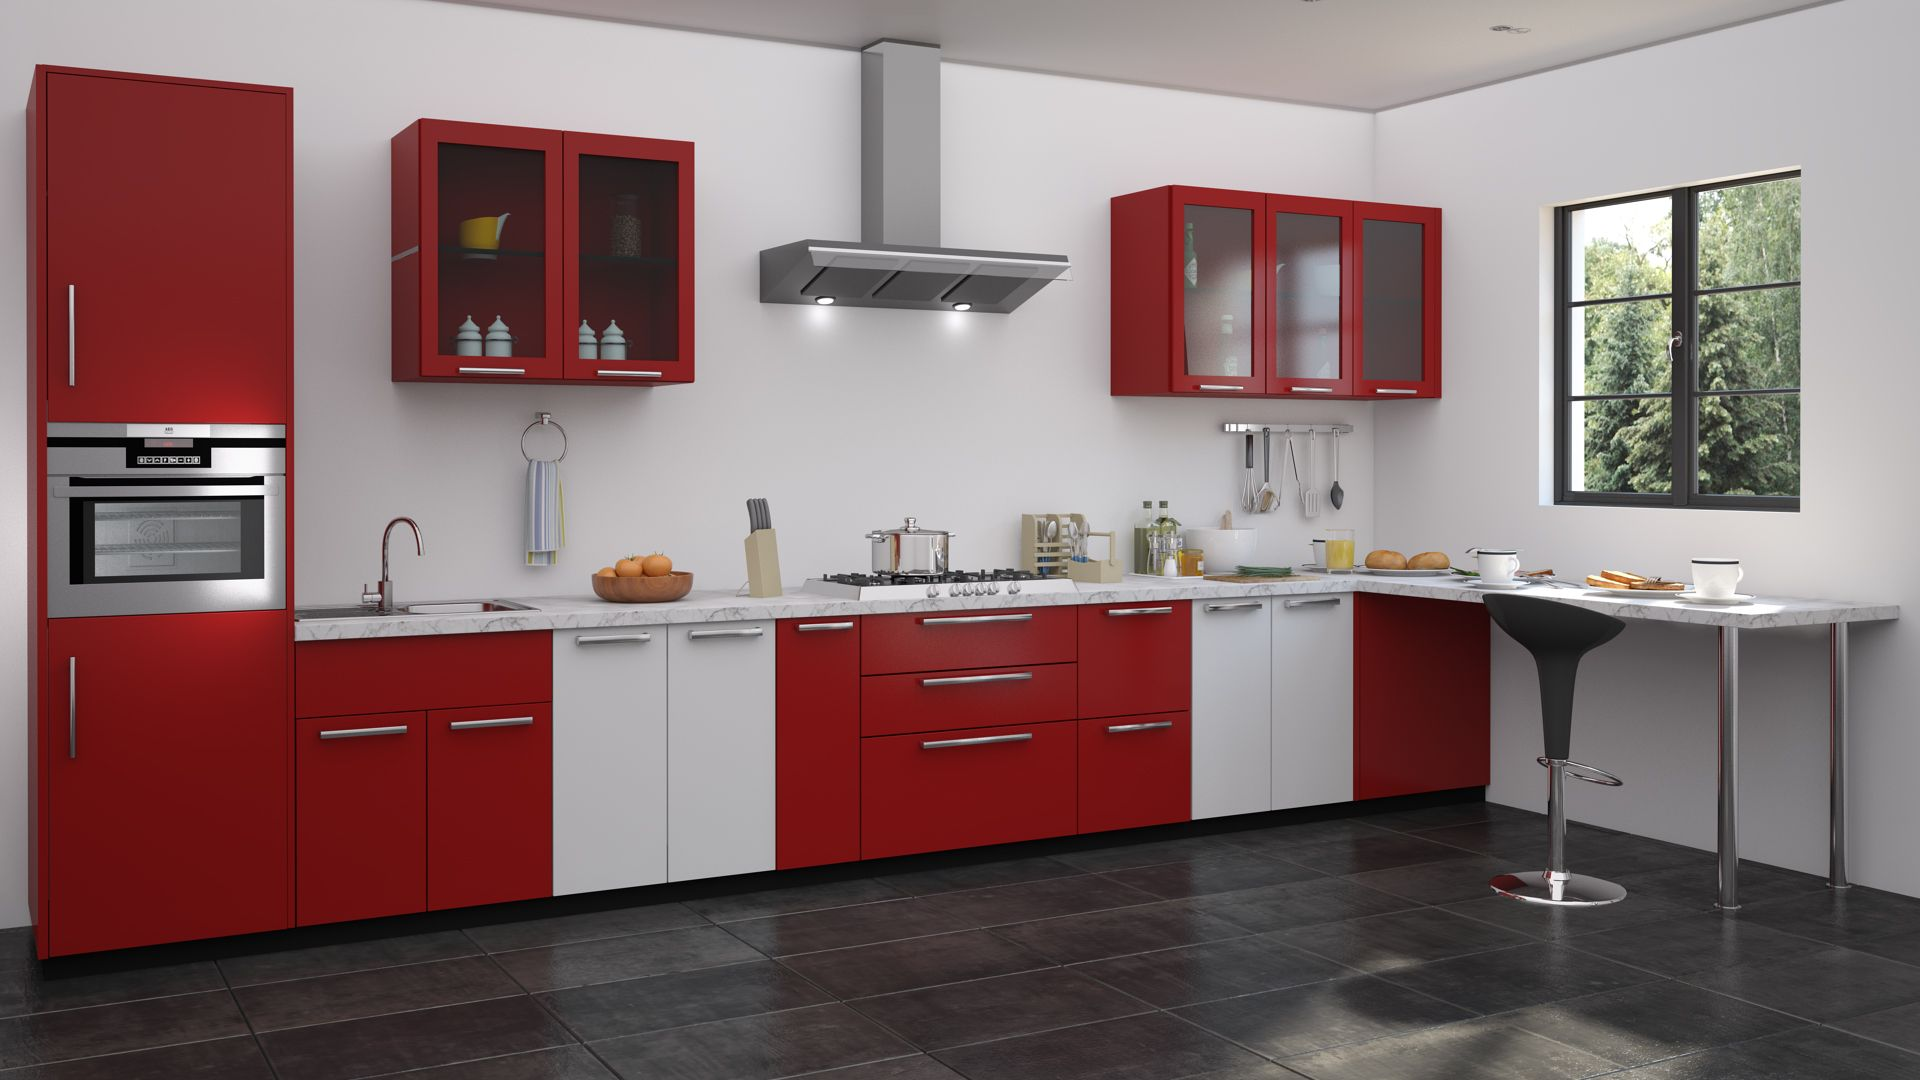 Red and white kitchen designs straight kitchen designs - Black red and white kitchen designs ...